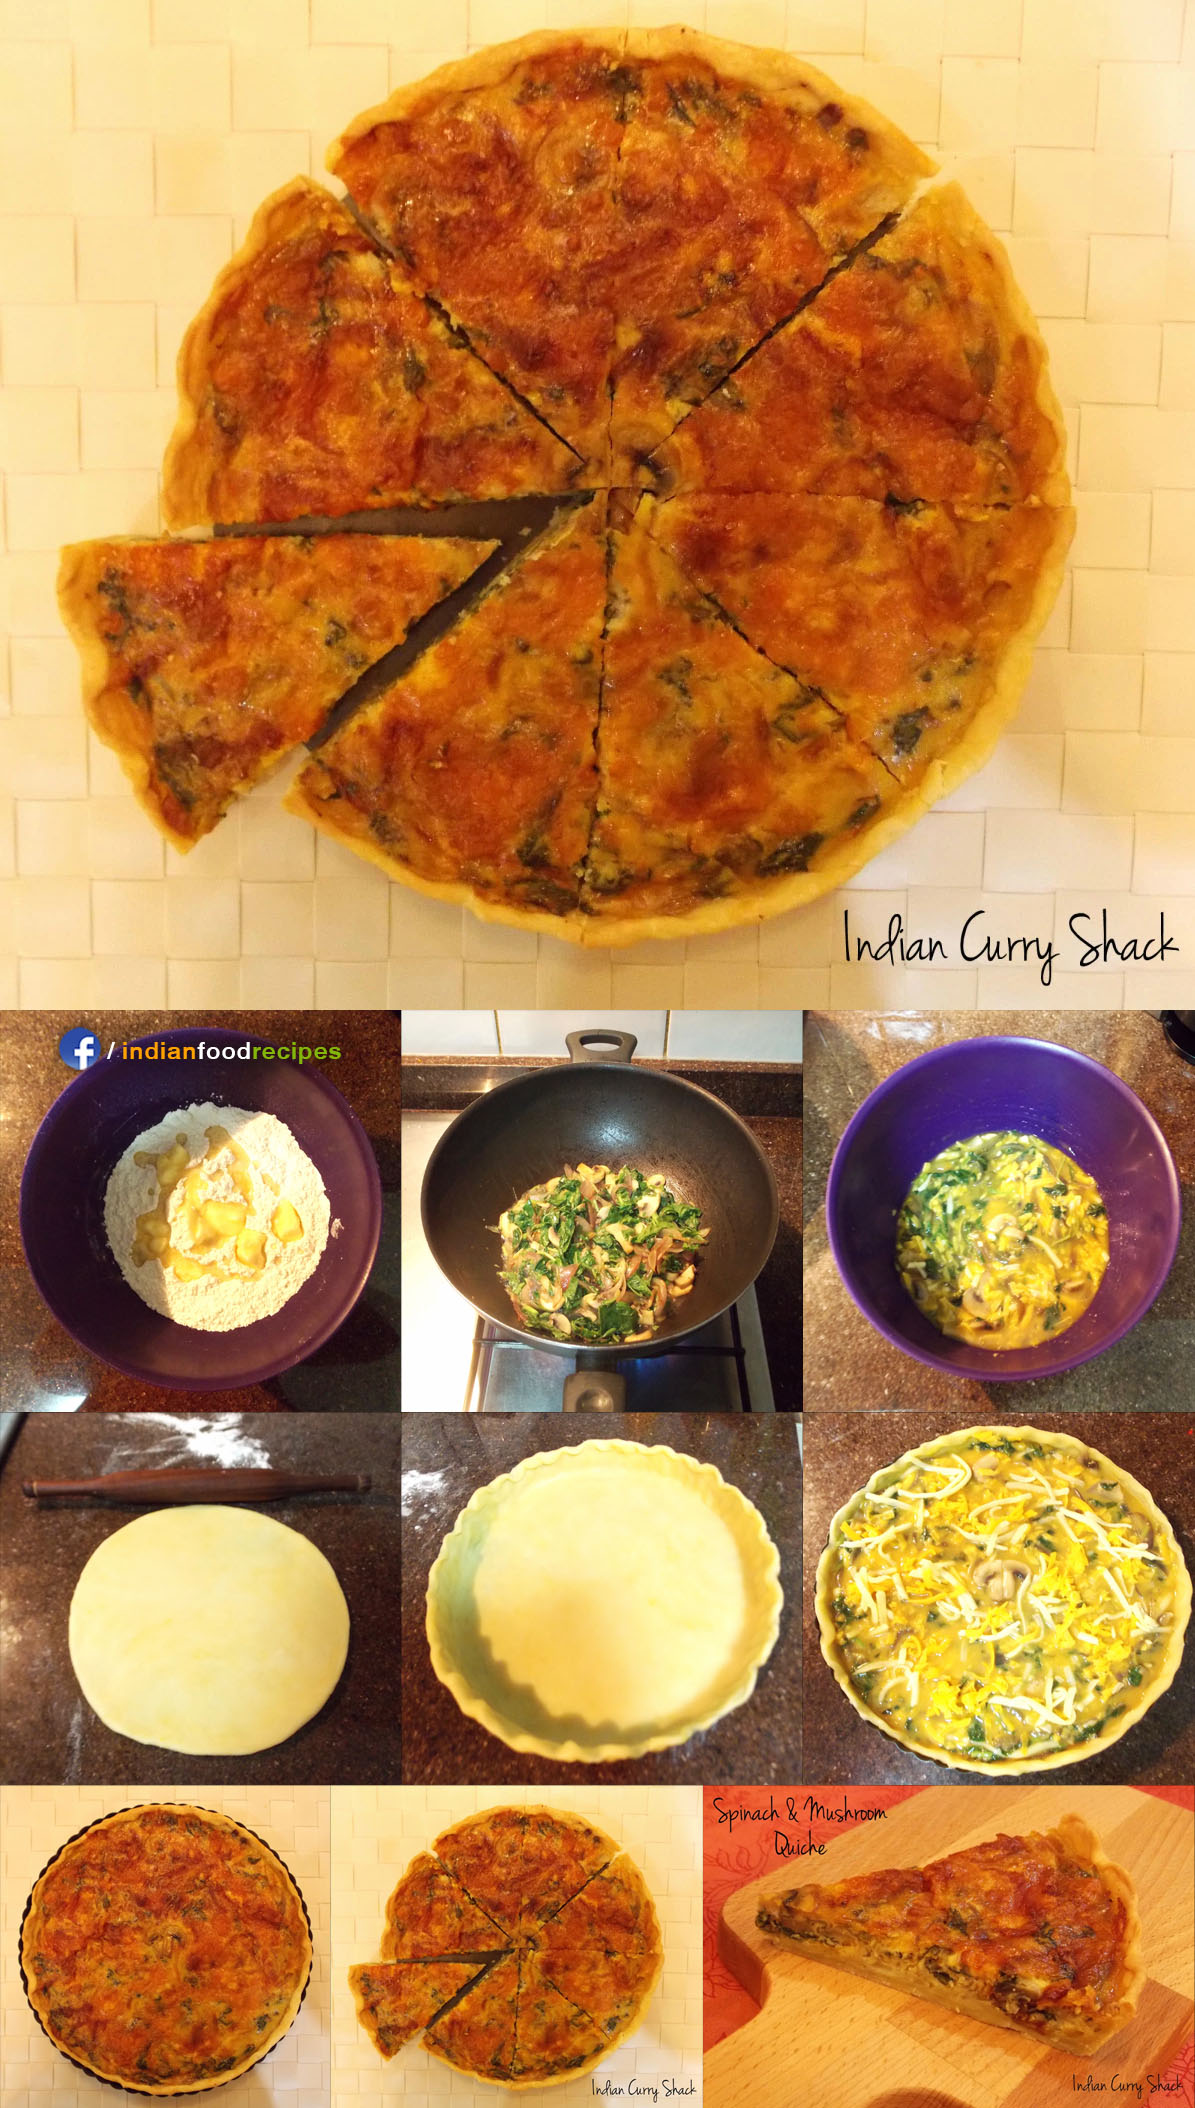 Spinach and Mushroom Quiche recipe step by step